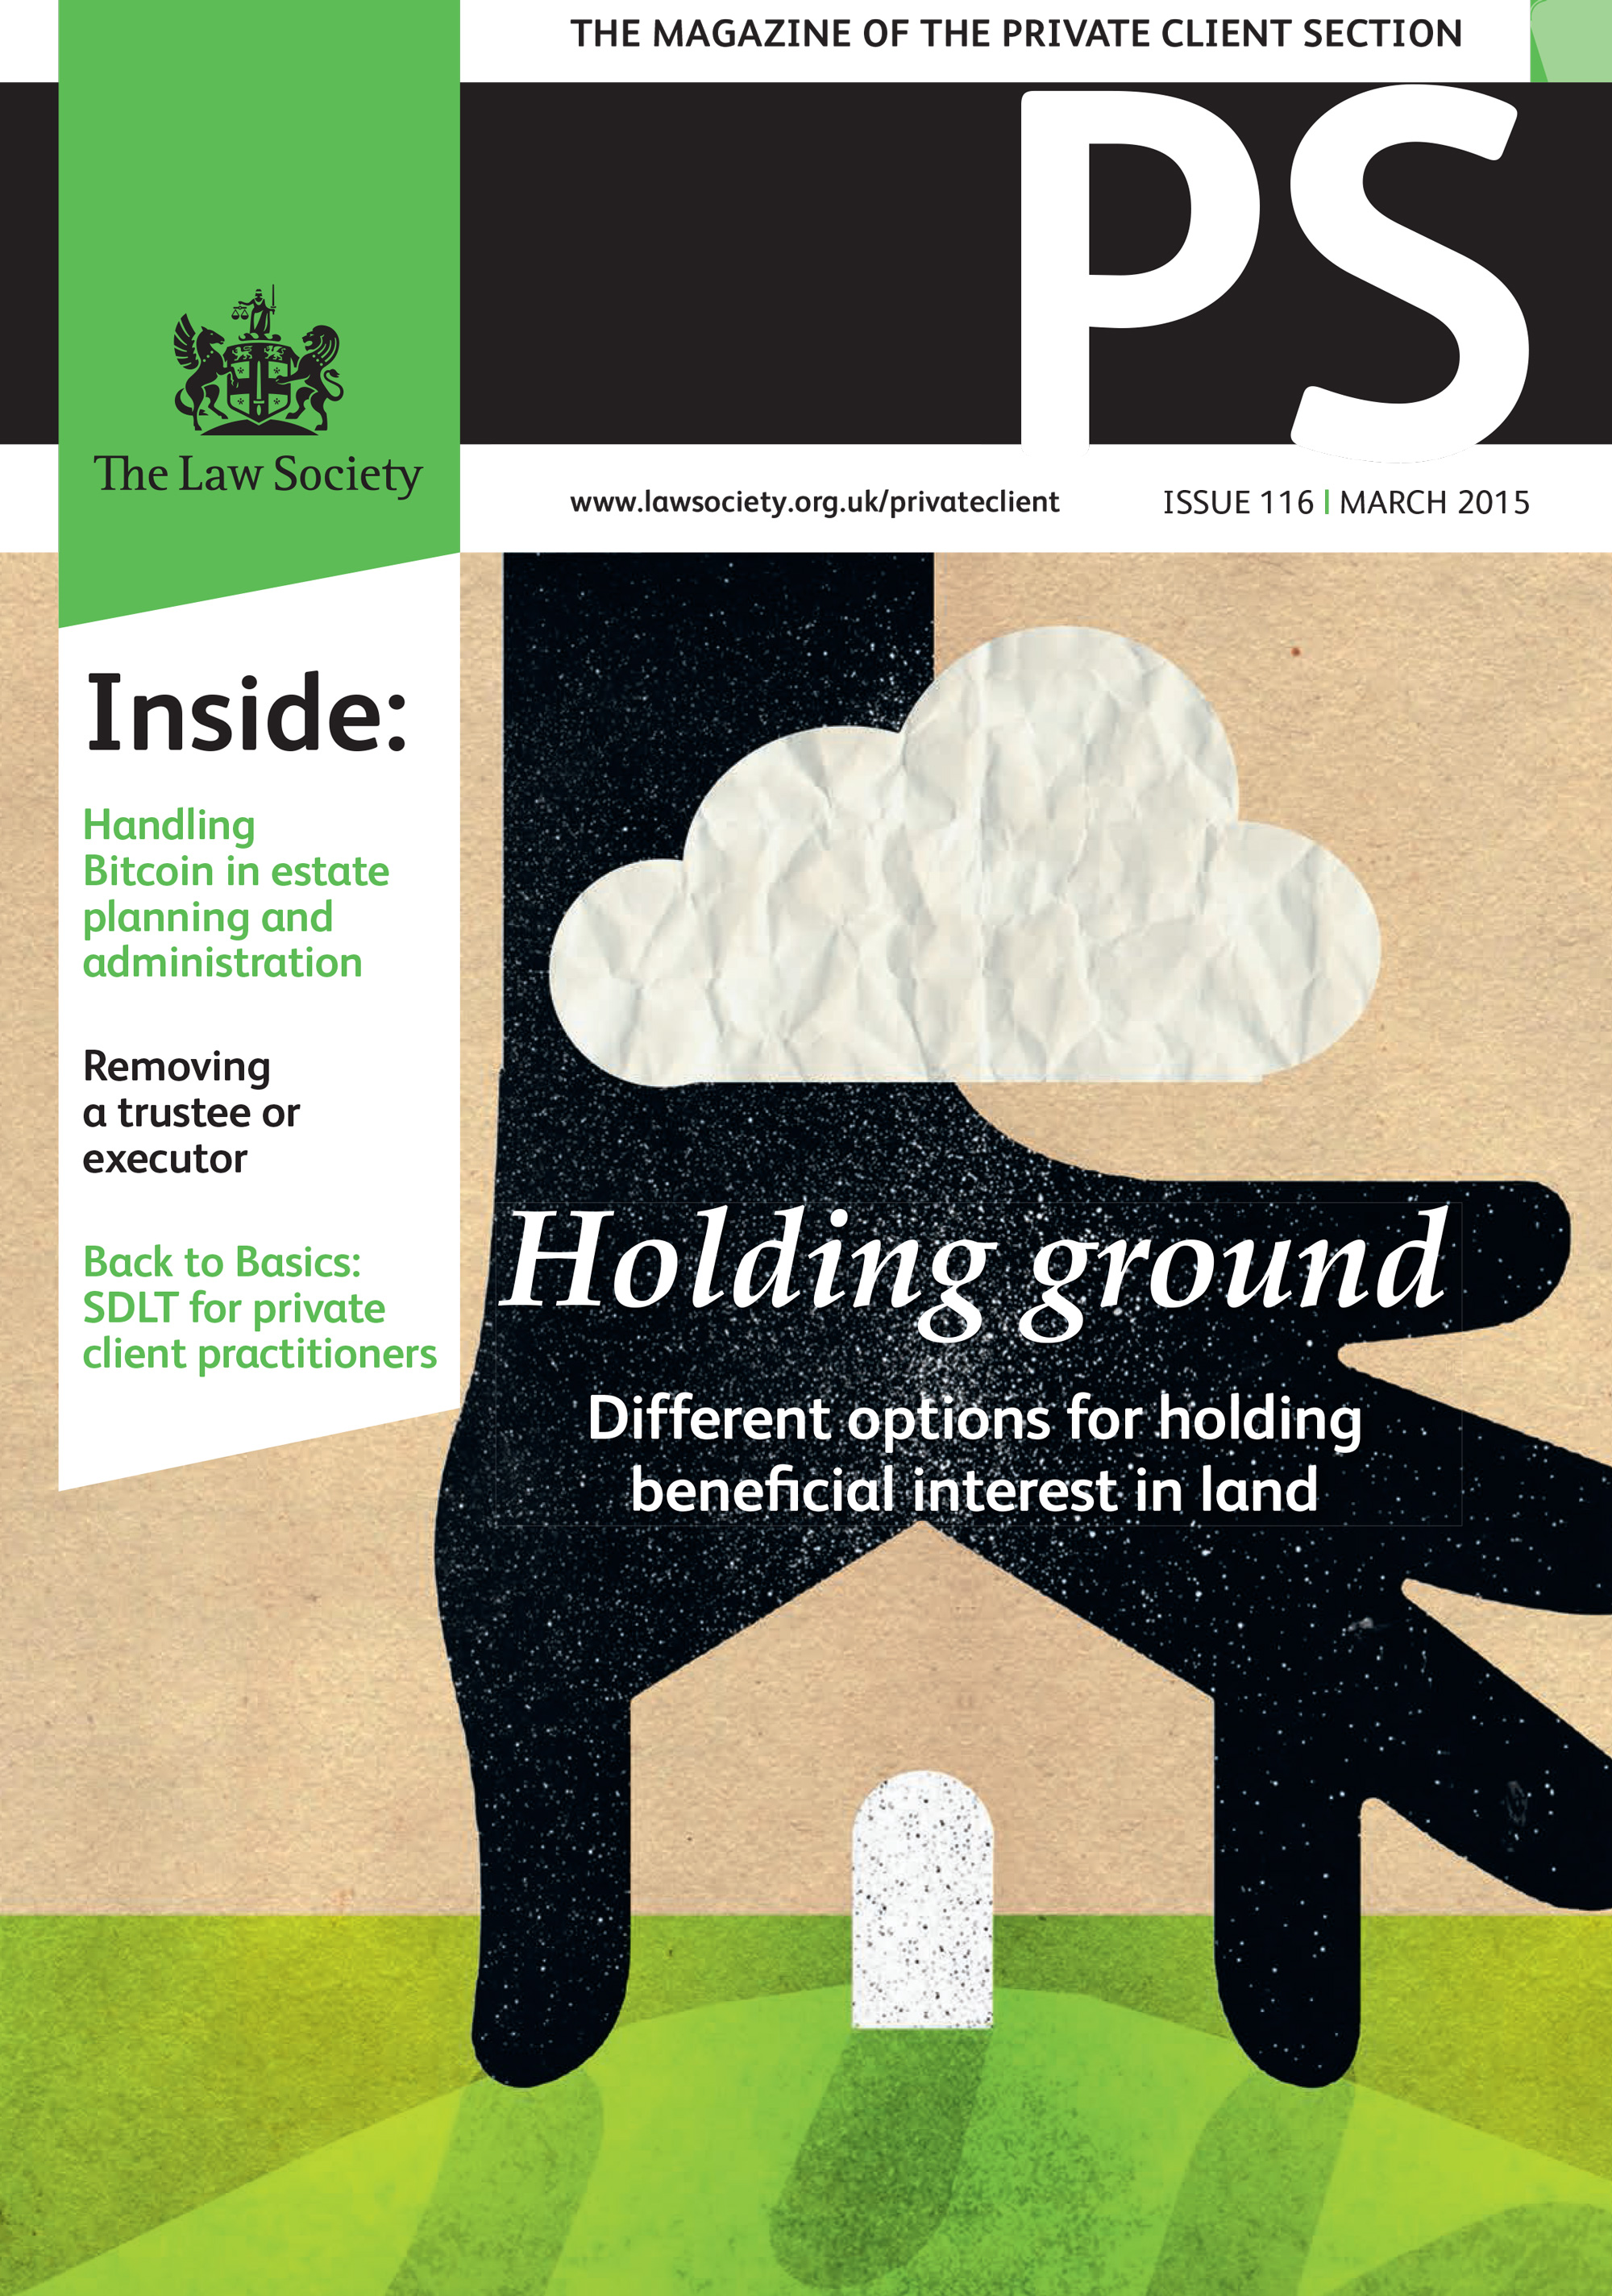 PS March 2015 cover image